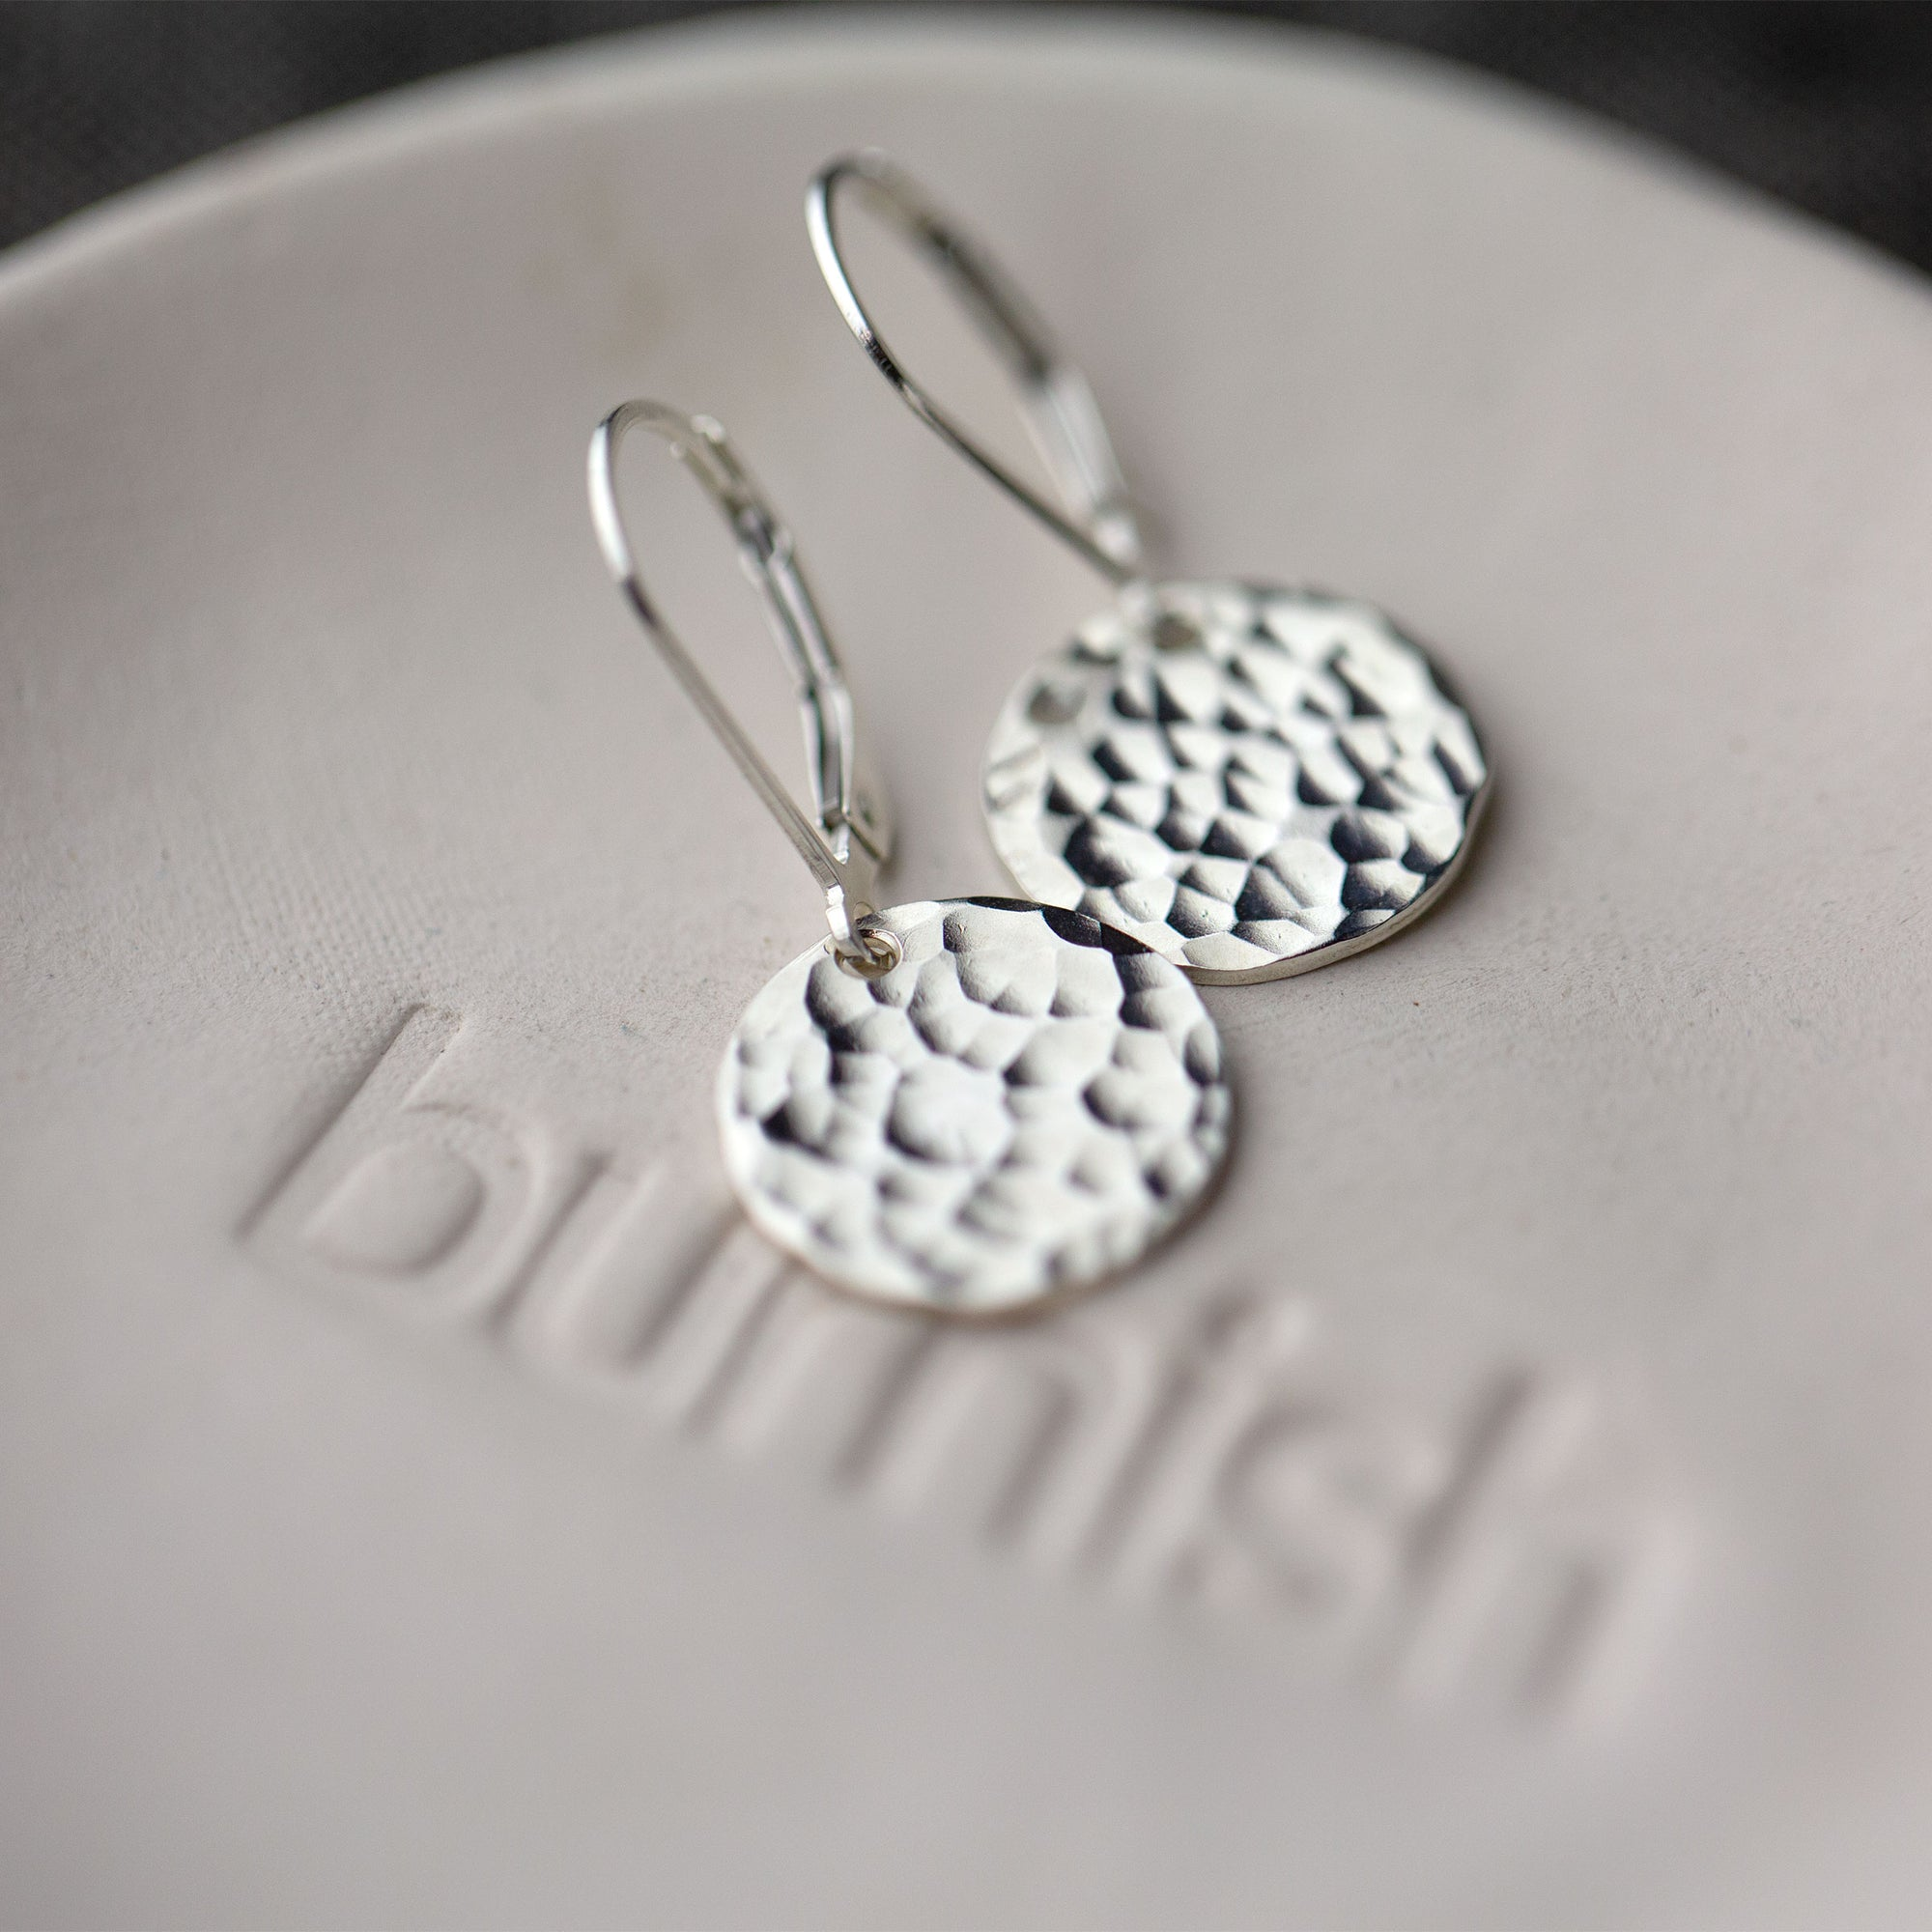 Medium Silver Hammered Disc Lever-back Earrings